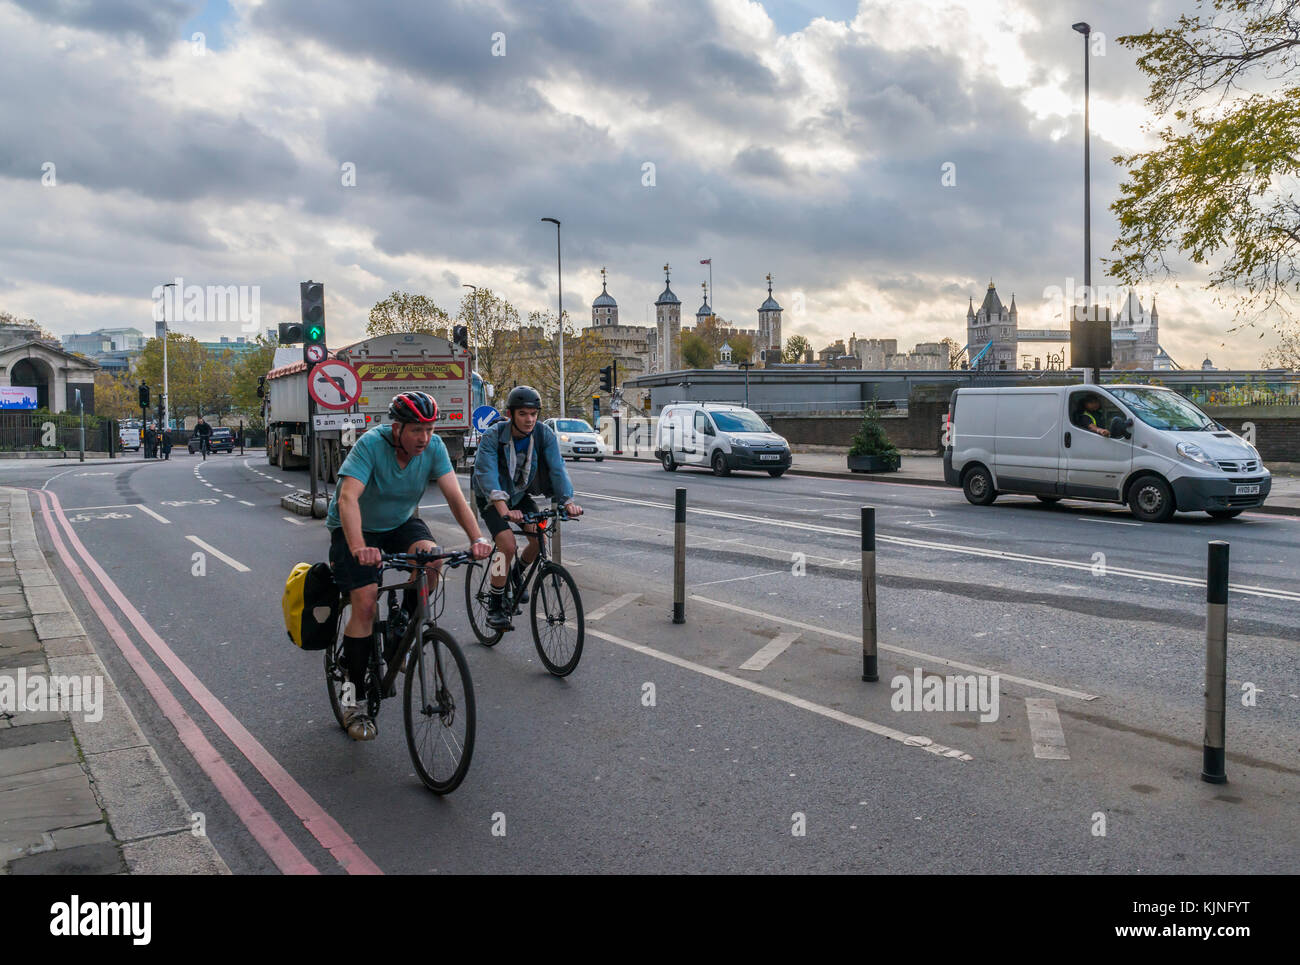 two cyclists on segregated cycling lane near Tower Hill in the City of London, UK - Stock Image